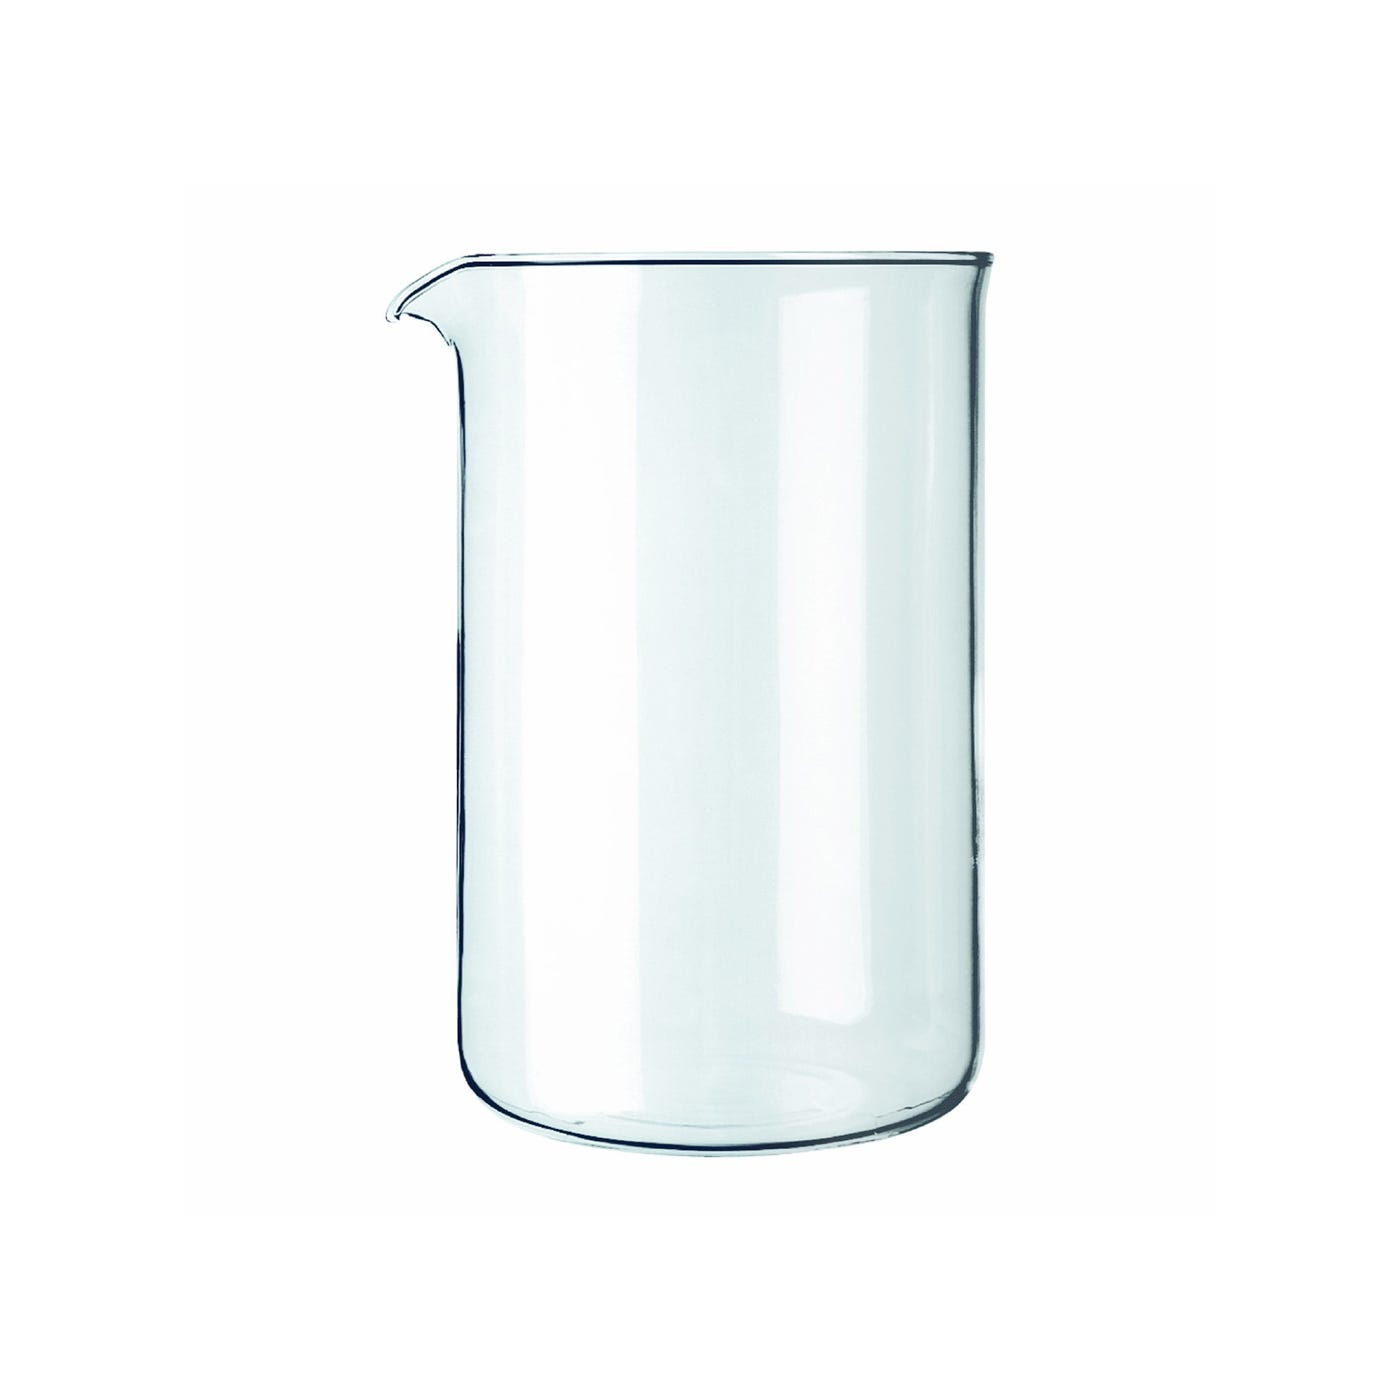 Bodum Cafetiere 8 Cup Replacement Glass